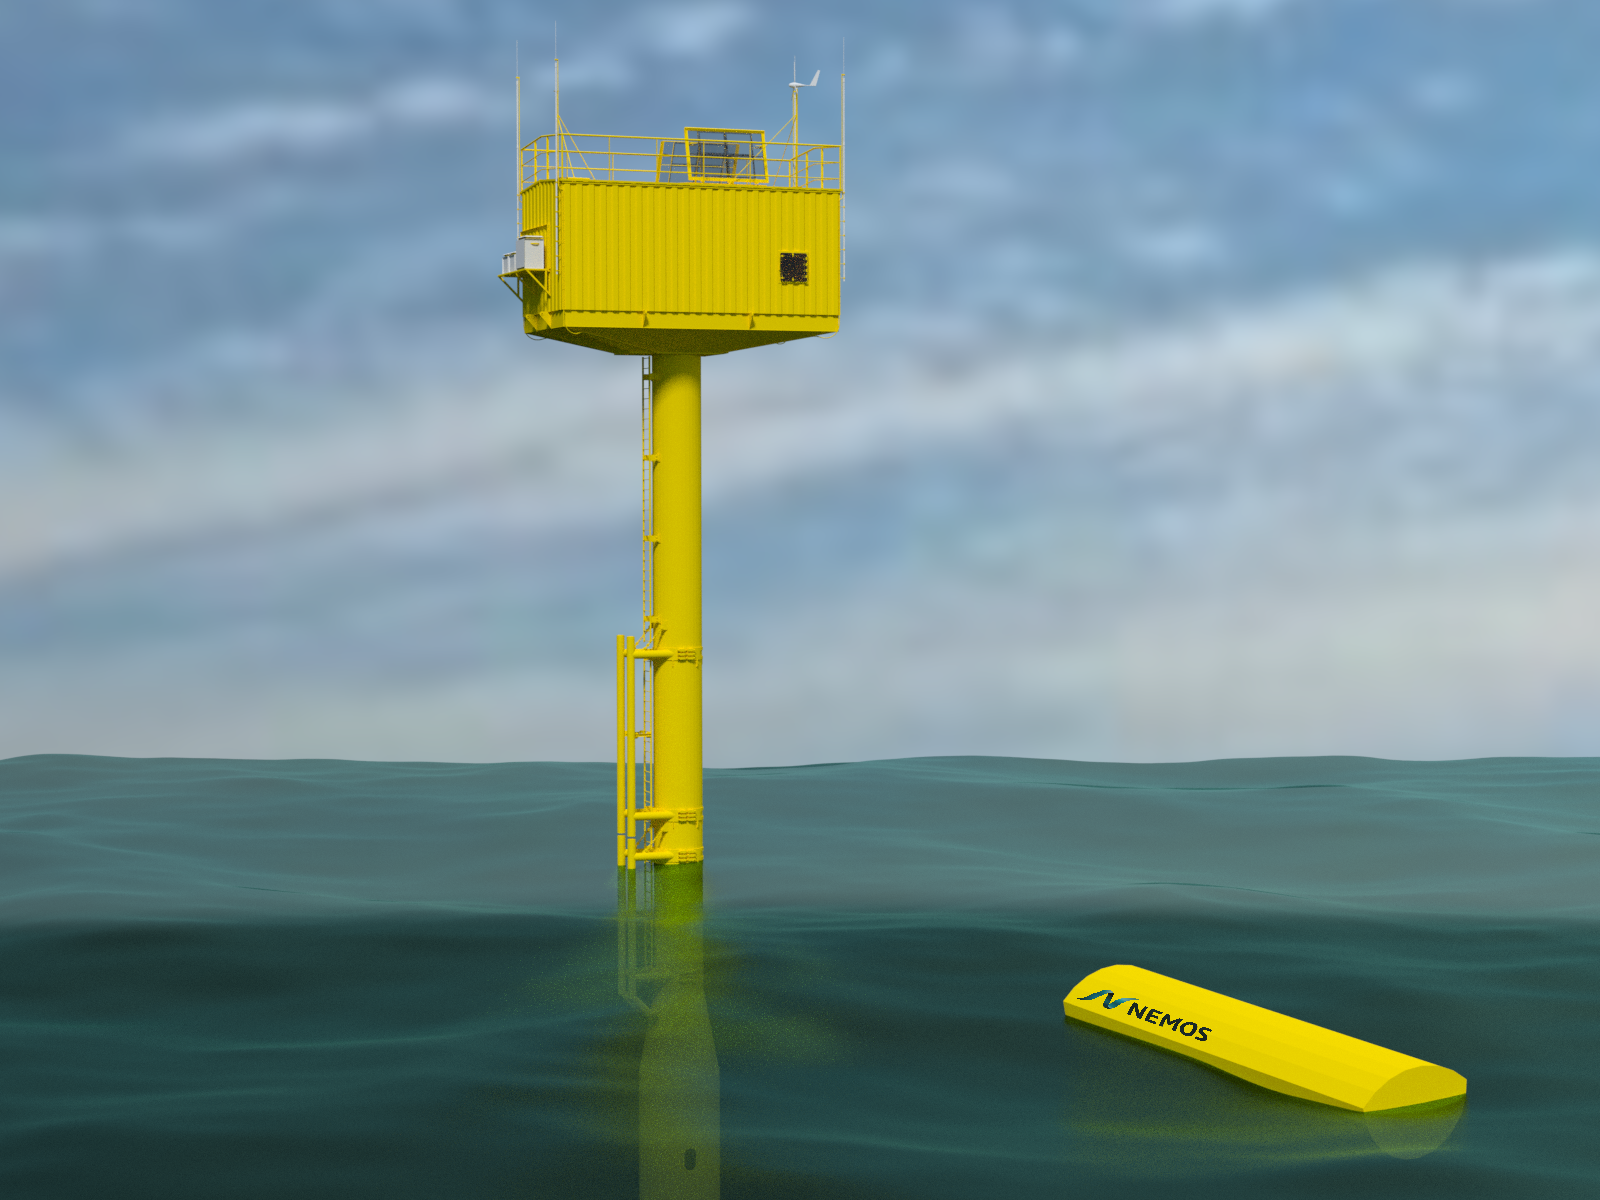 - Moving forward in the development path, NEMOS is preparing the installation of the Ostend Research Tower that will provide the required infrastructure for the next generation NEMOS Wave Energy Converter prototype that is currently being developed. With the Belgian Development Agency POM West-Vlaanderen (http://pomwvl.be/) NEMOS found a cooperation partner who is planning to provide this research infrastructure for further ocean energy and marine research activities for years to come. To build this sustainable solution on a solid foundation, a technical due diligence process was launched that will accompany the project until commissioning.